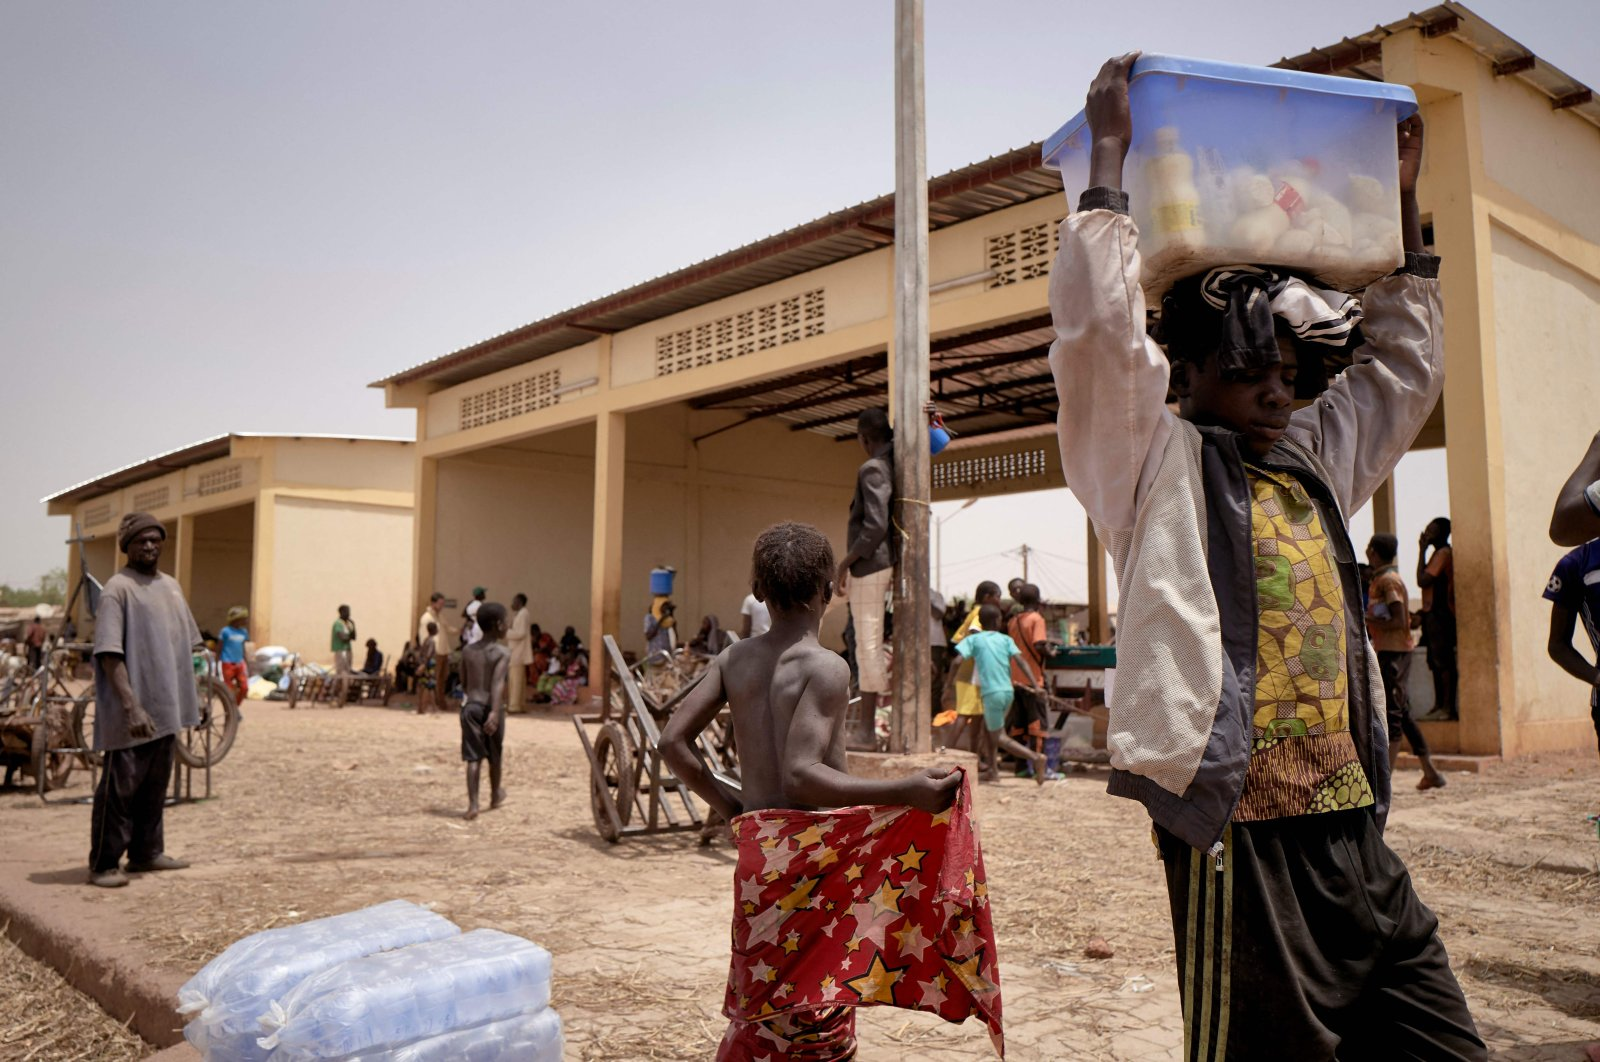 Food crisis worsening in West Africa after COVID-19 and attacks